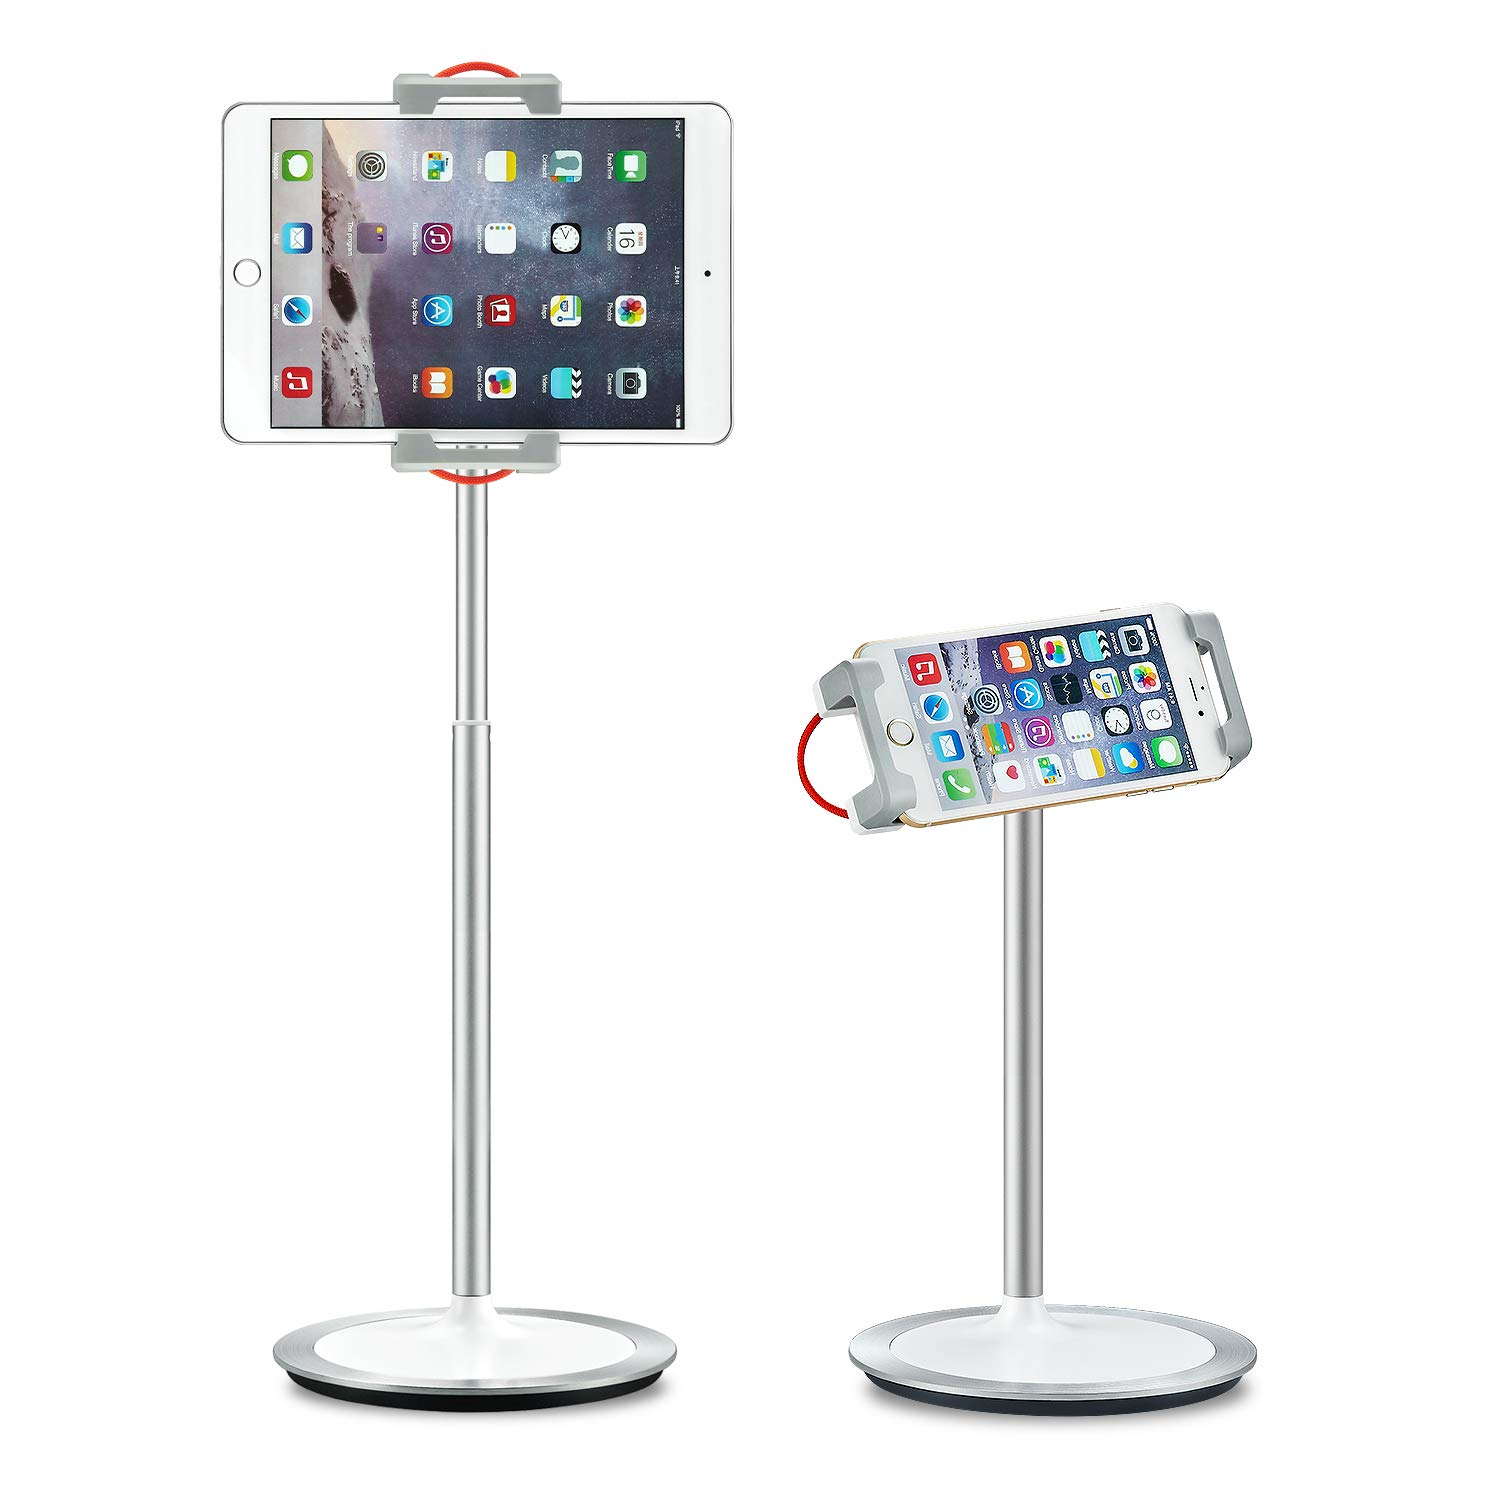 Saiji Tablet Stand Holder, Height Adjustable, 360 Degree Rotating, Aluminum Alloy Cradle Mount Dock for 4.7-12.9 inch iPhone Samsung, iPad, Nintendo Switch, Kindle, eBook Reader (Silver) by Saiji